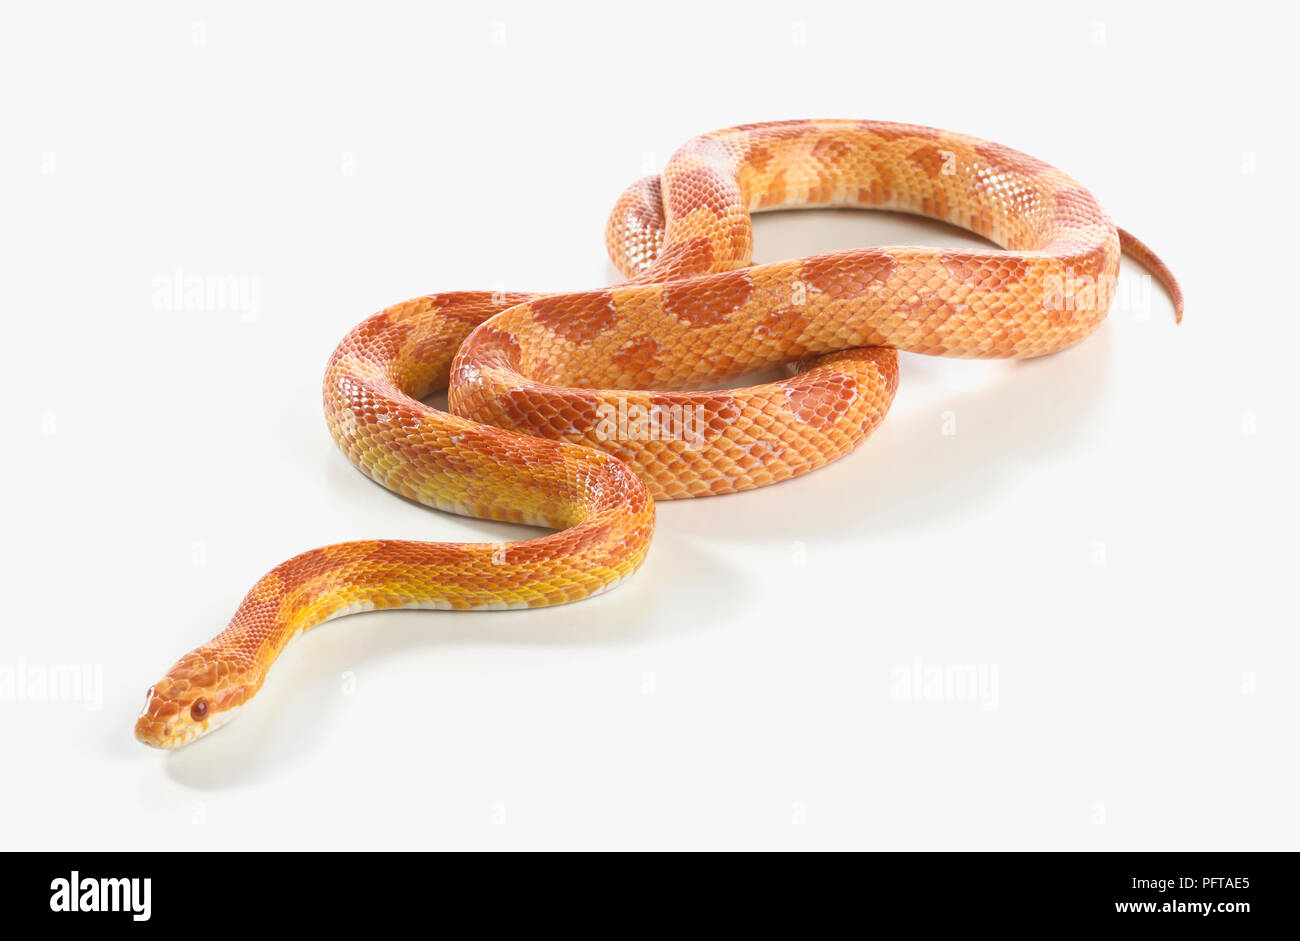 Snake Cut Out Stock Images & Pictures - Alamy